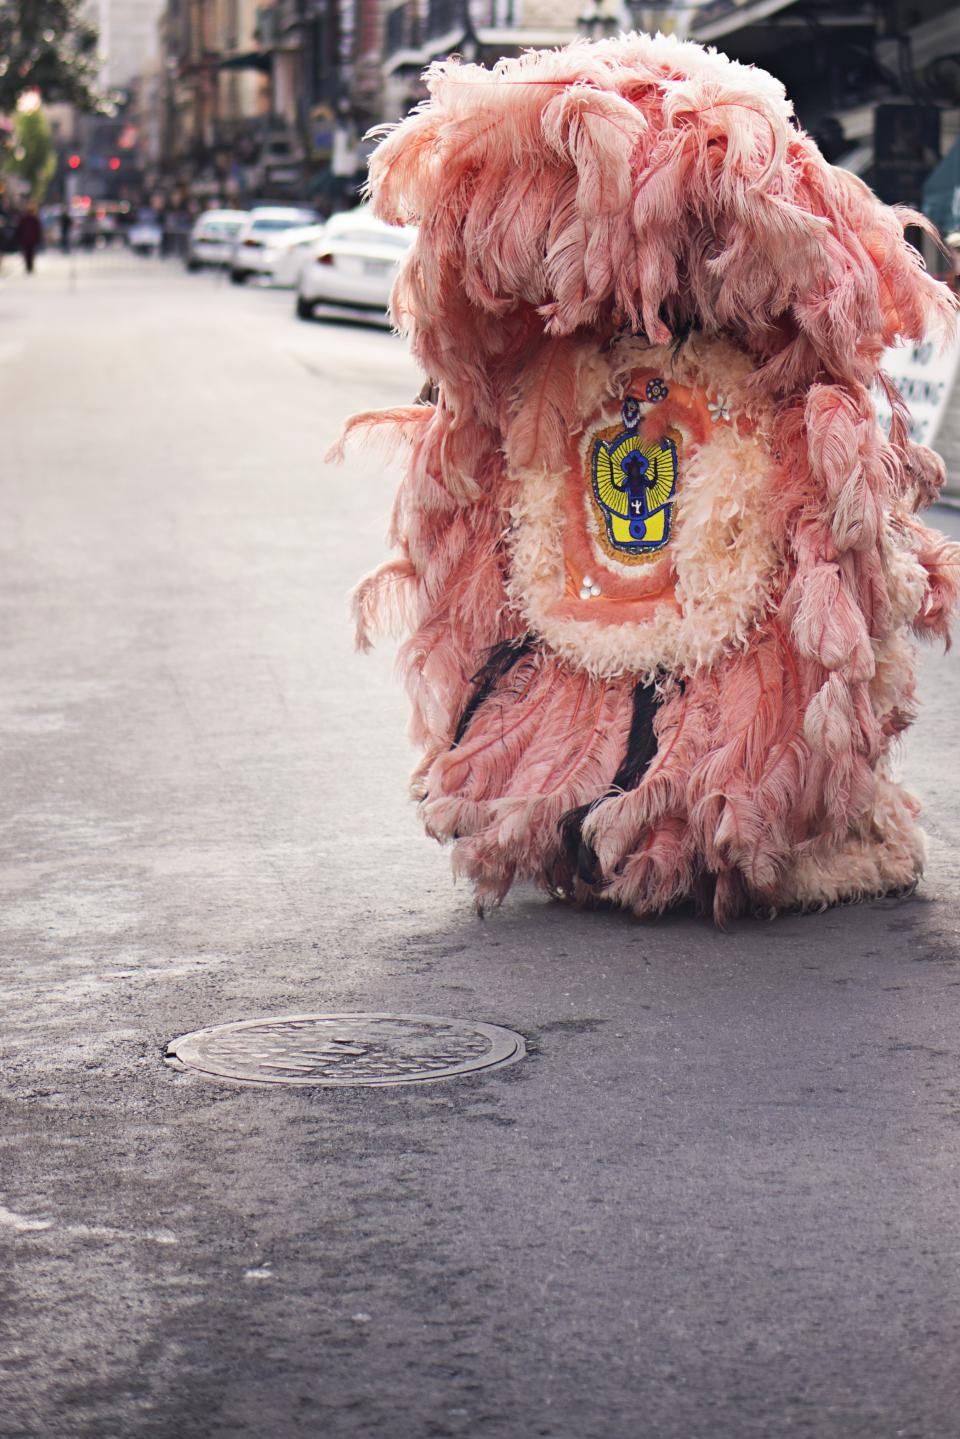 pink costume fur street pavement manhole